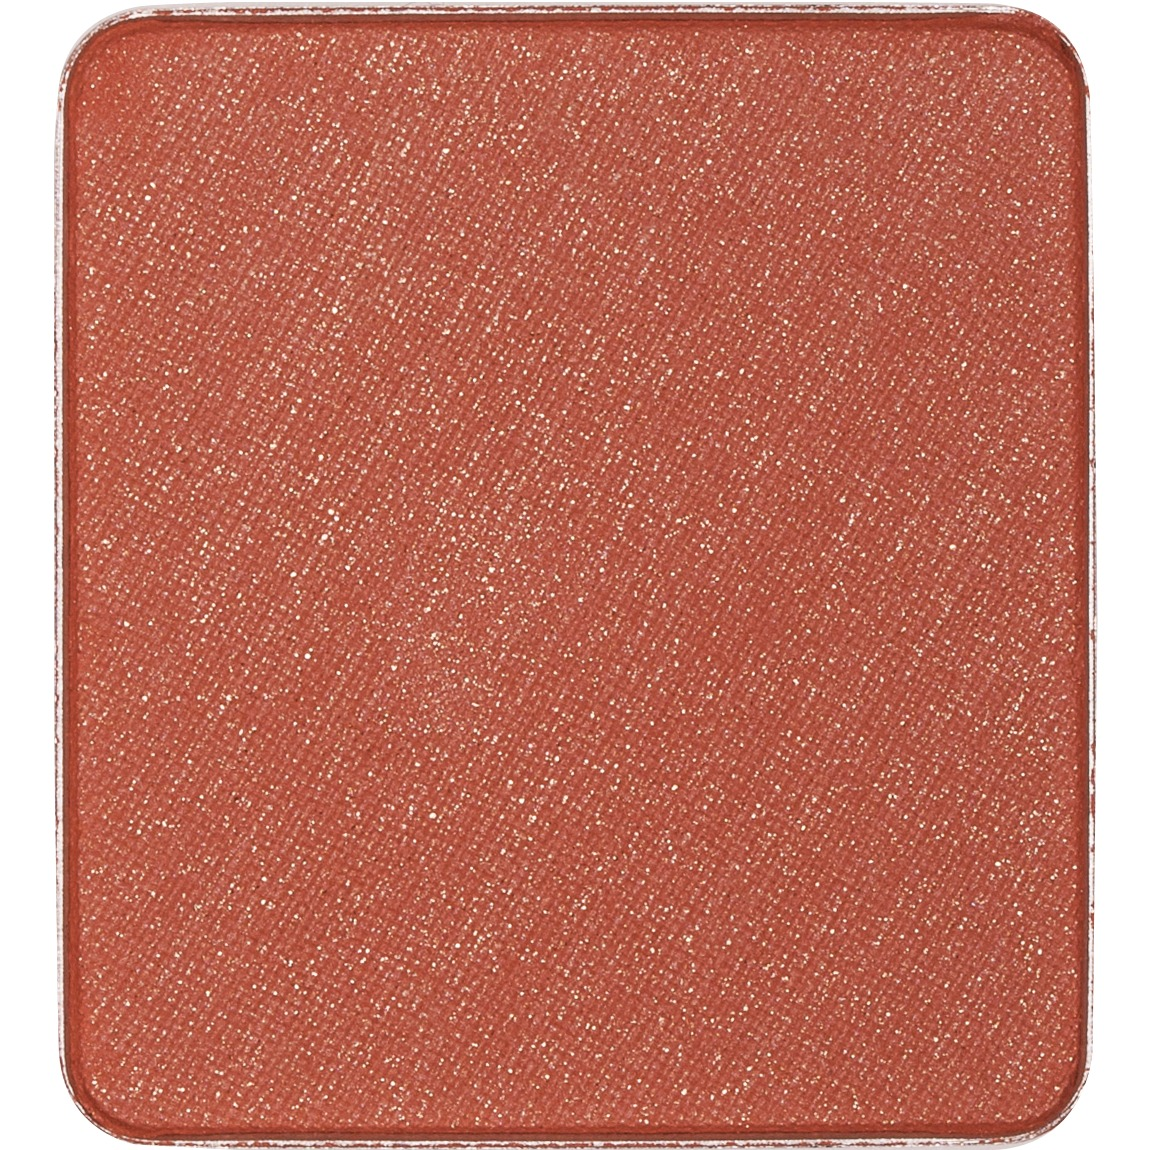 Inglot Cosmetics Freedom System Eye Shadow 464 Double Sparkle product swatch.